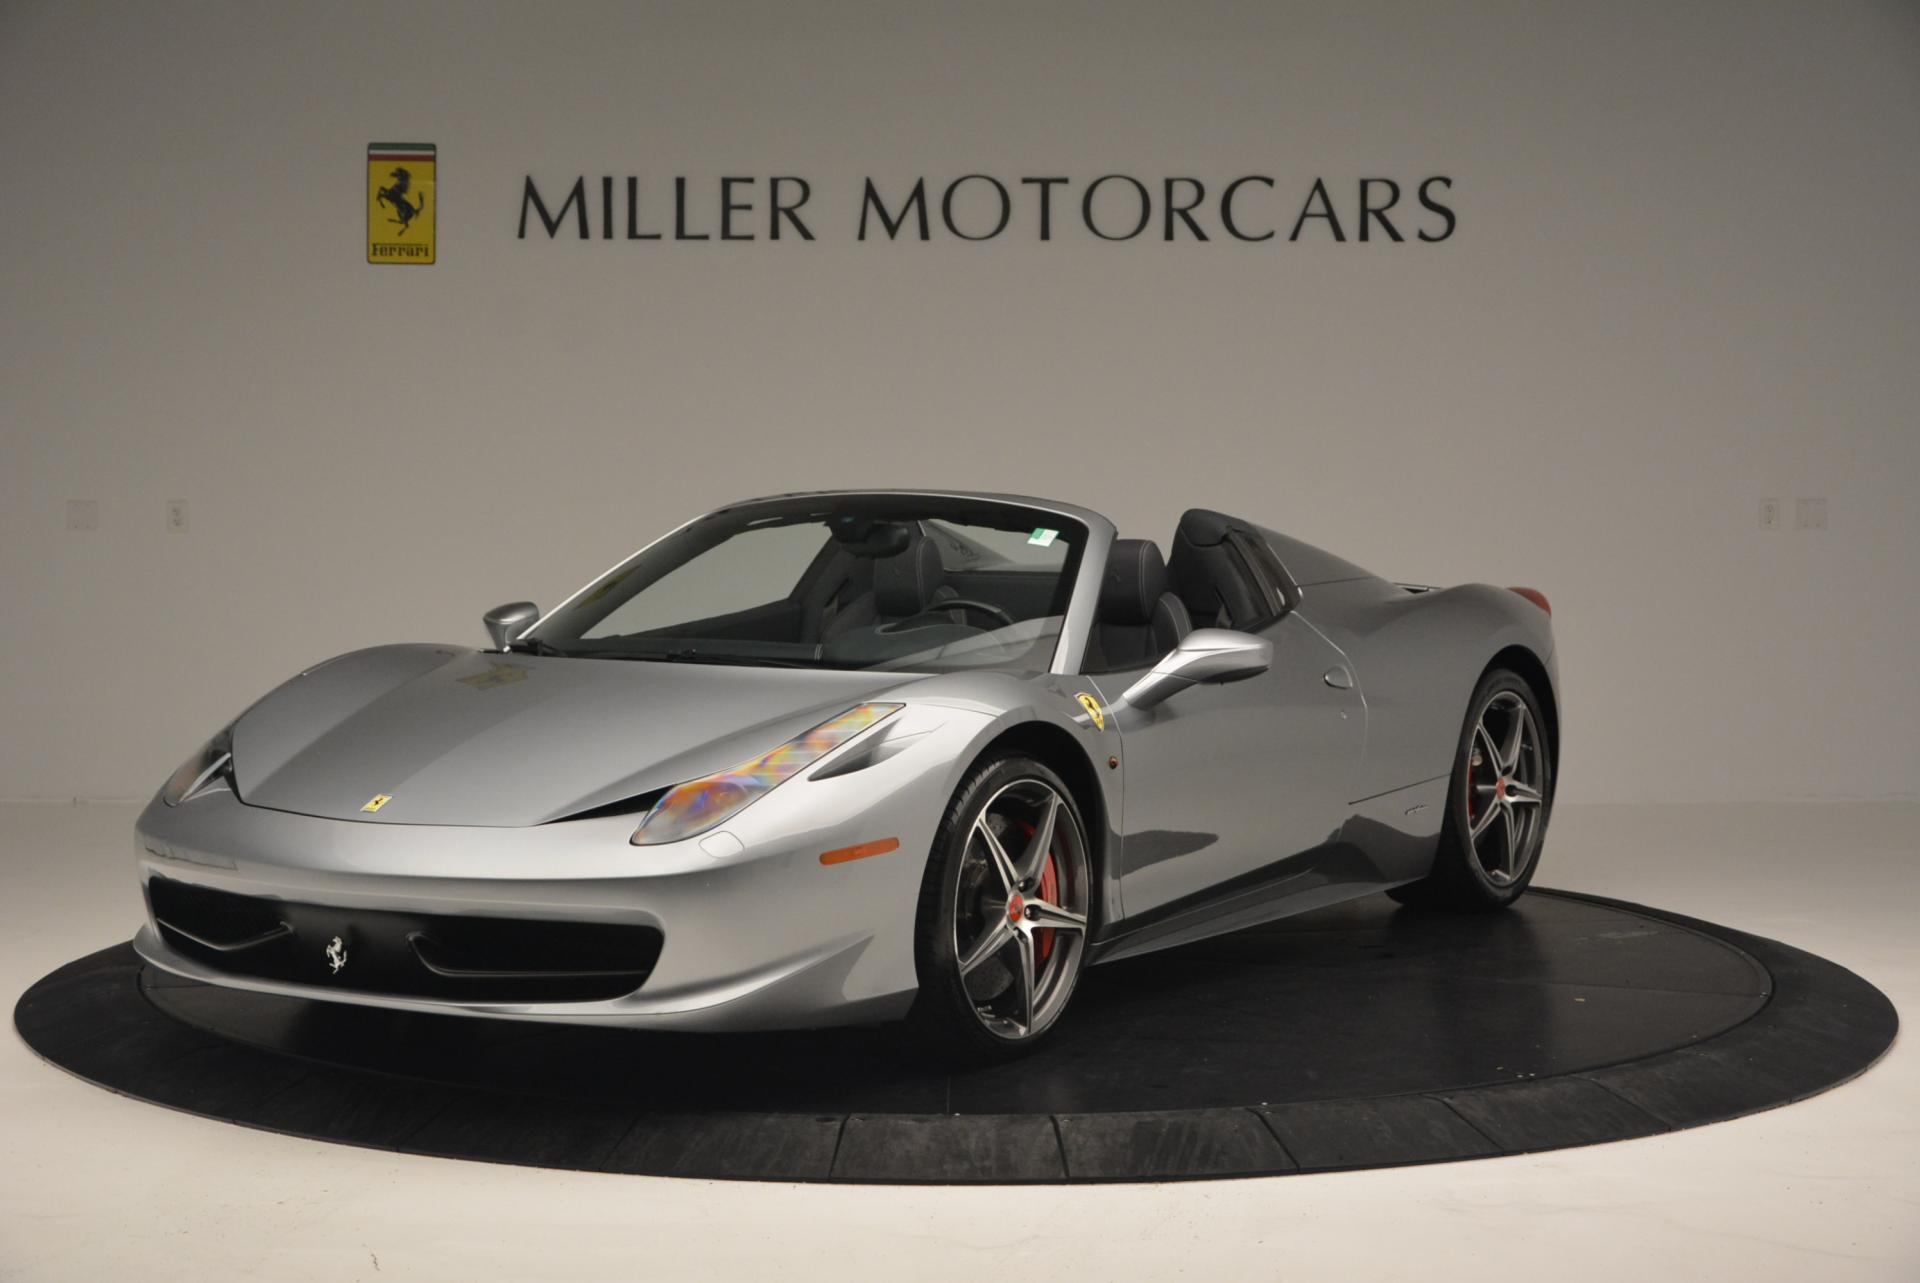 Used 2013 Ferrari 458 Spider for sale Sold at Maserati of Westport in Westport CT 06880 1